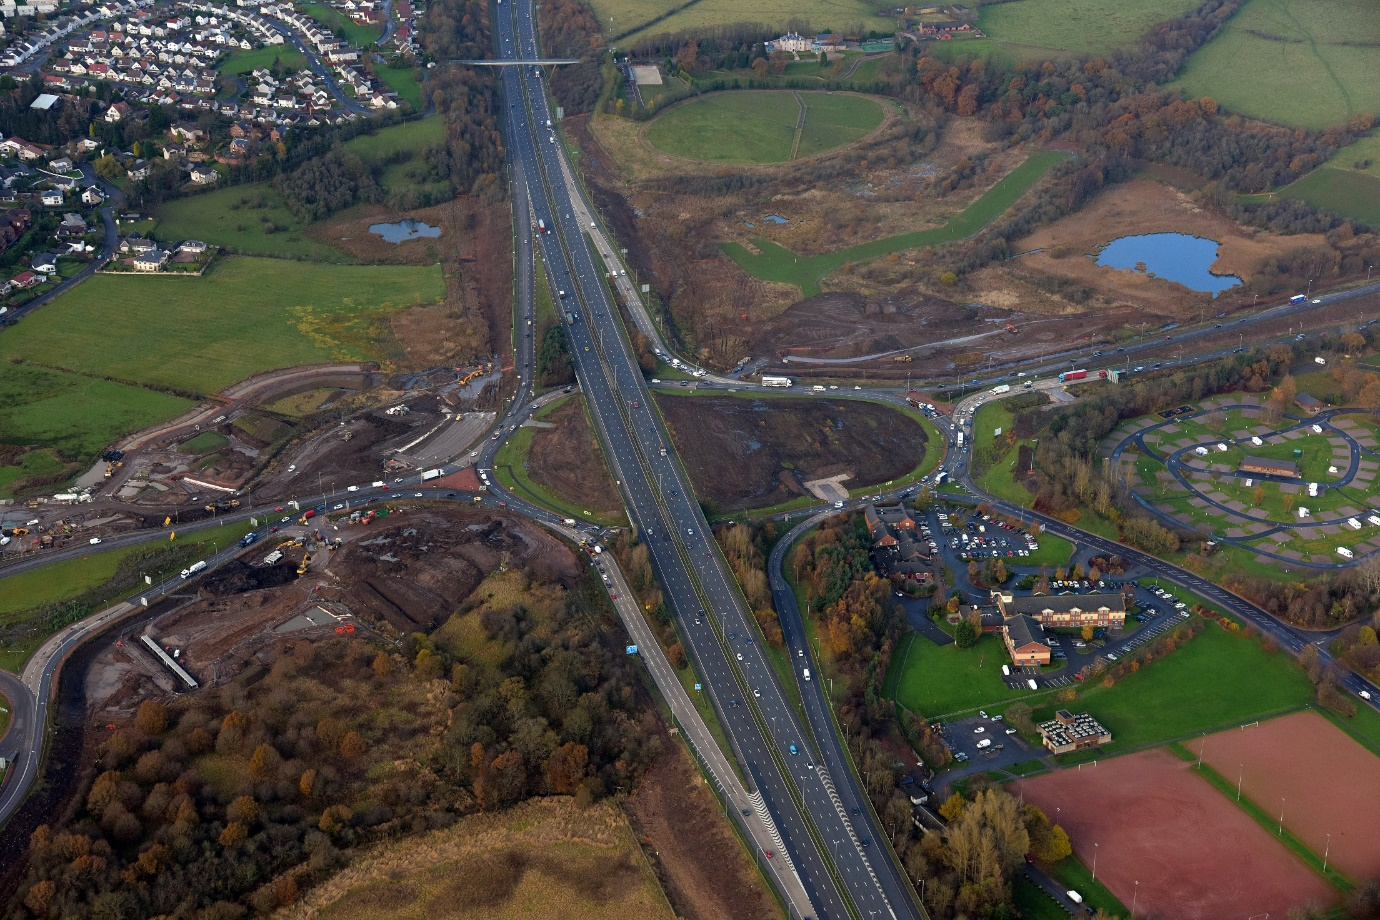 Aerial view of Raith Junction 5 of M74 during construction circa November 2014, prior to piling of the underpass